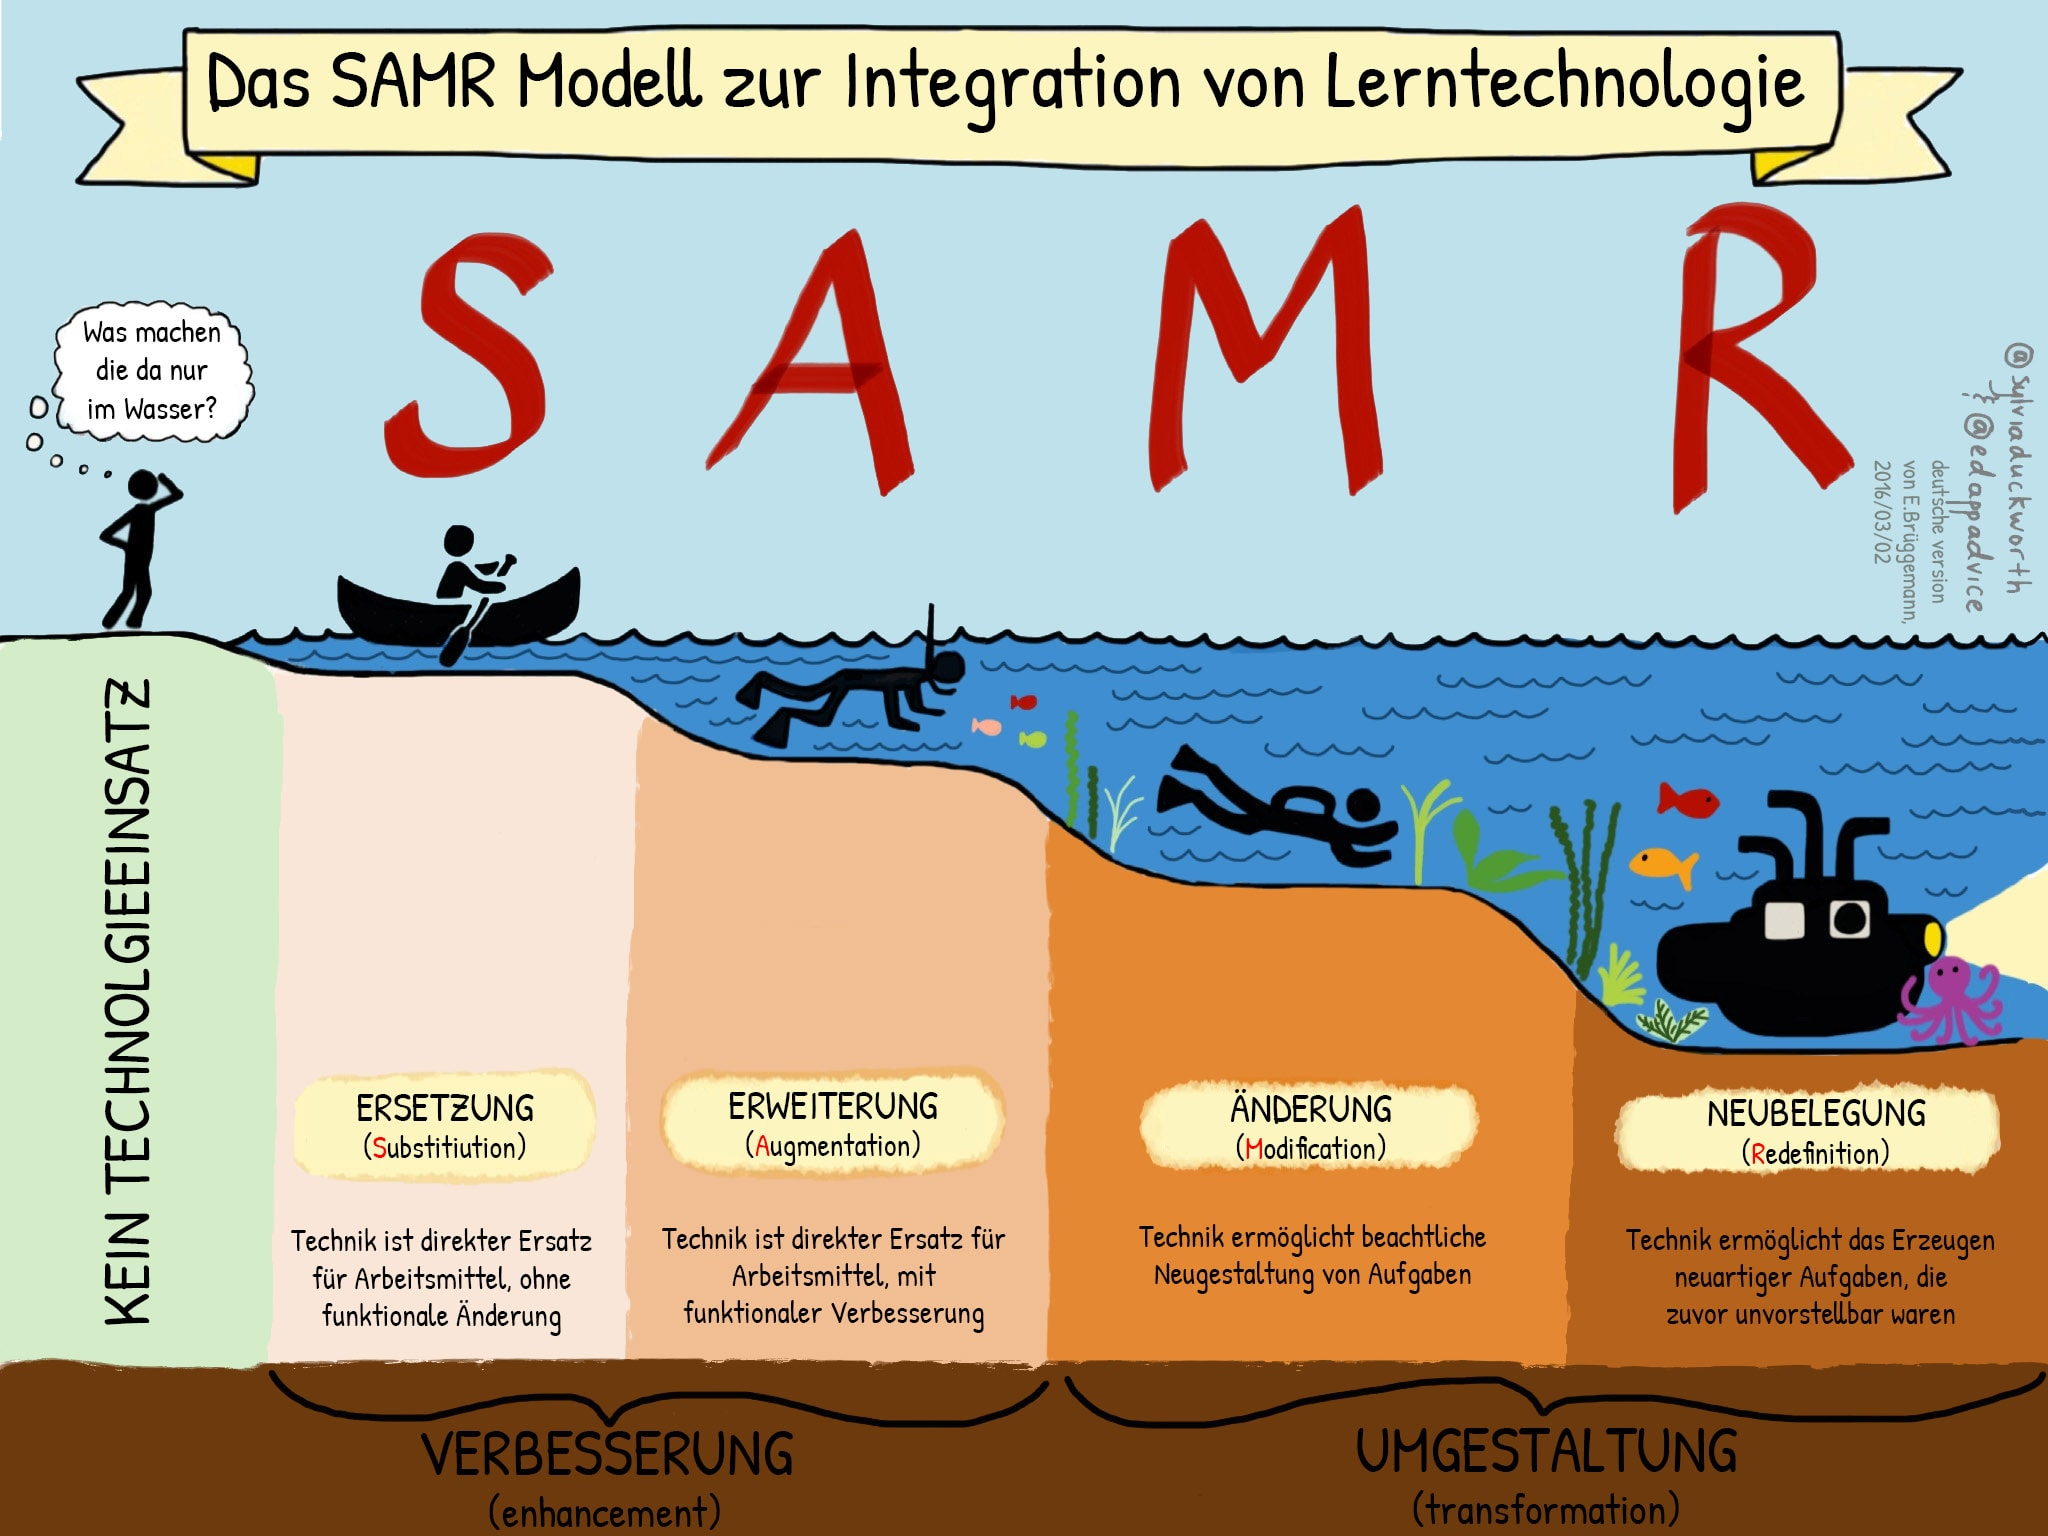 The SAMR Model for Technology Integration